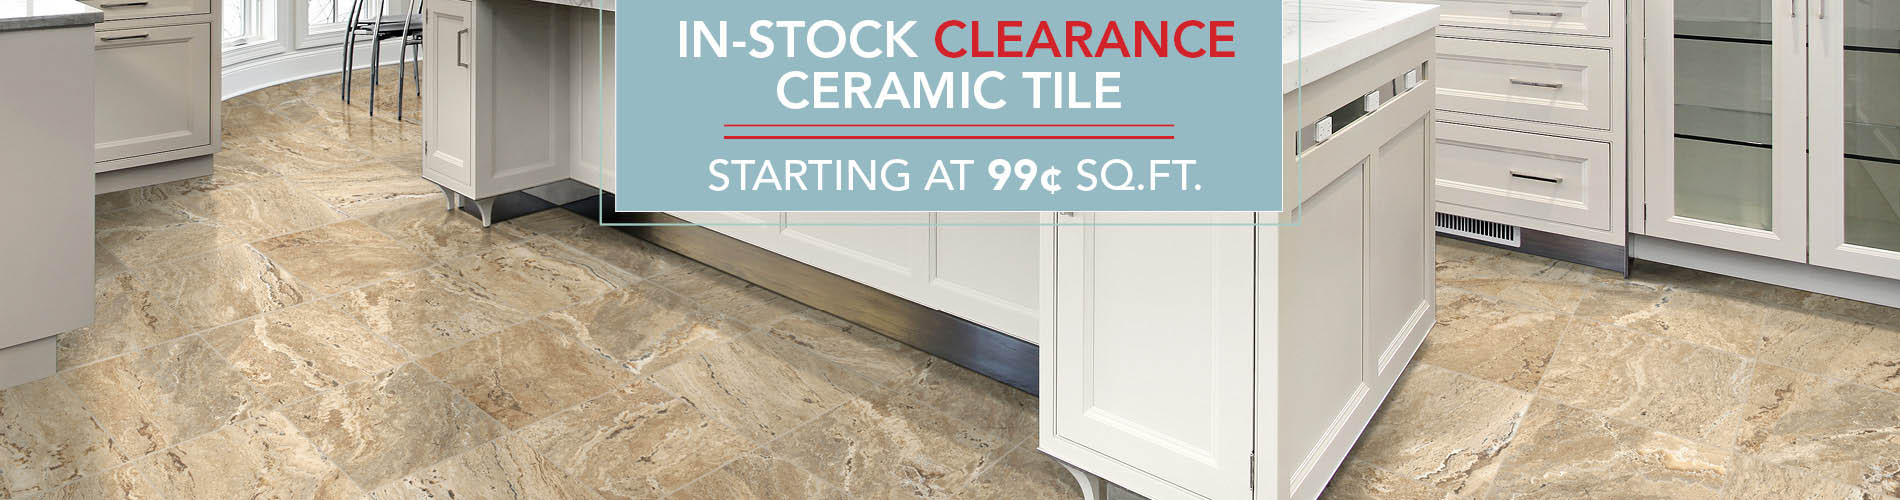 In-stock clearance ceramic tile starting at $0.99 sq.ft.